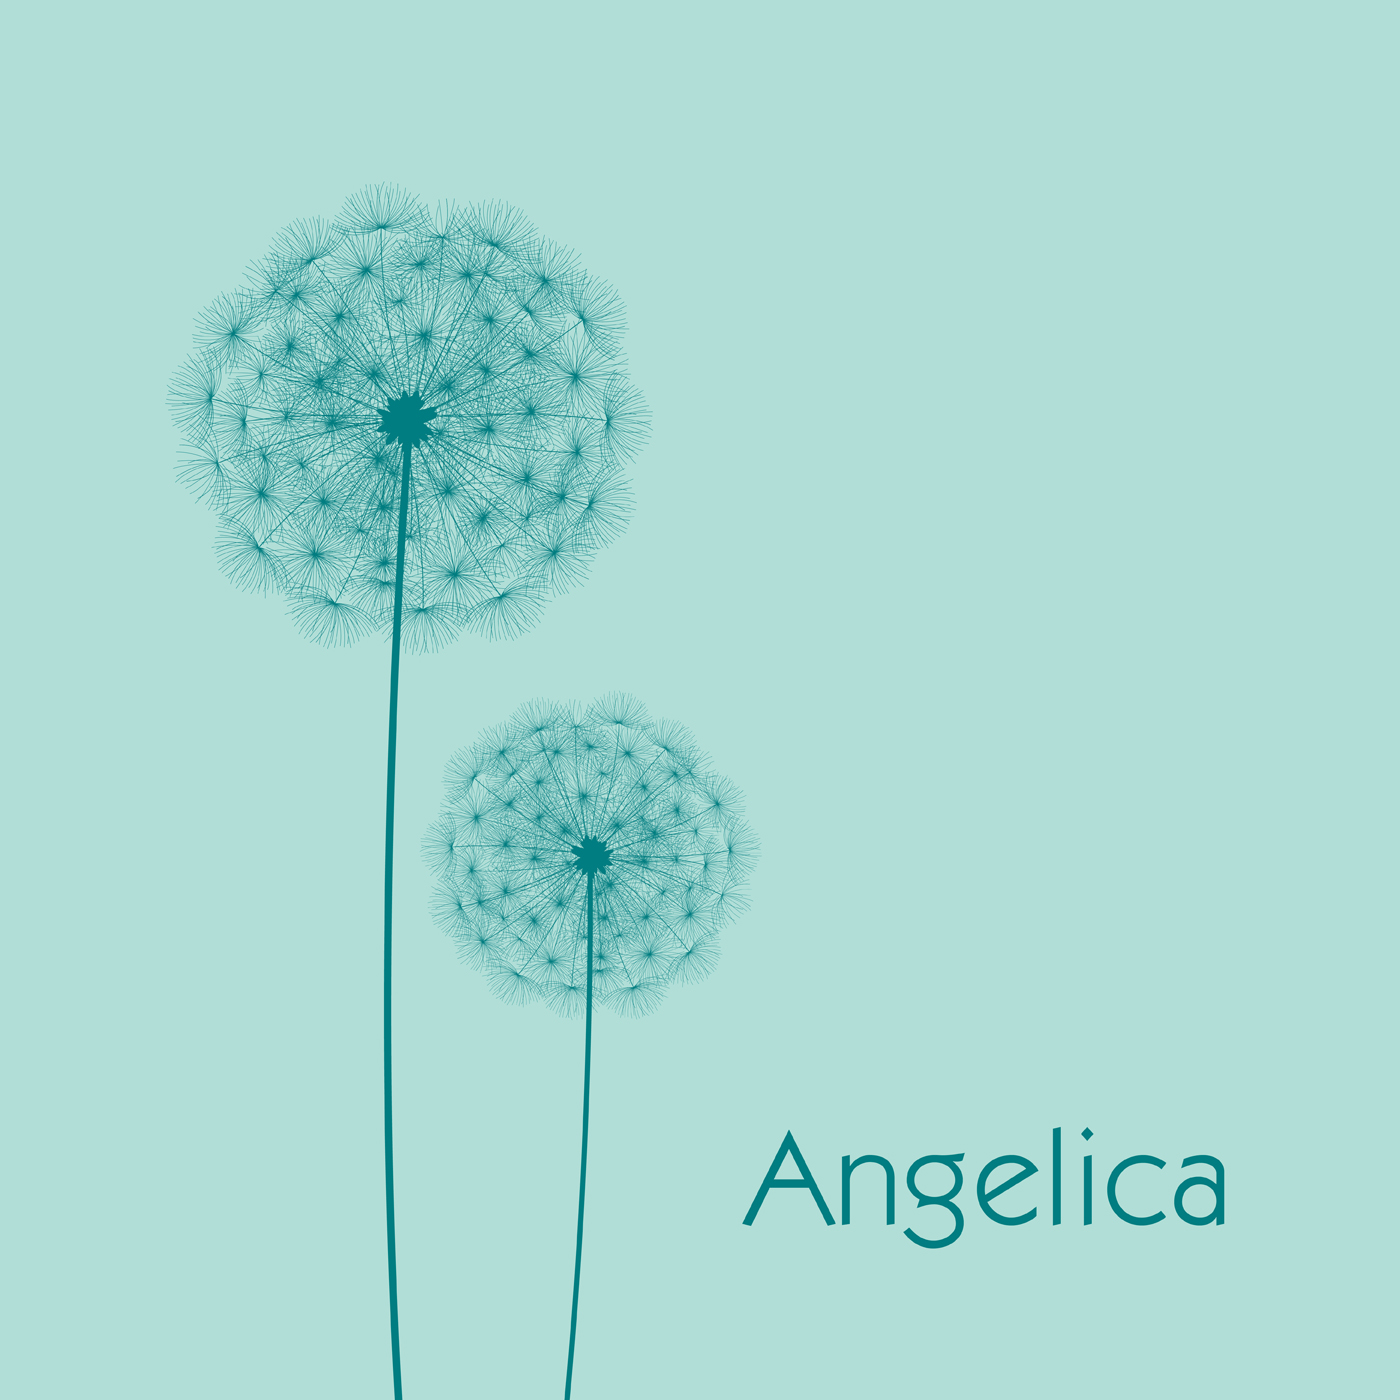 """If you areinterested in listening to more tracks from Martina's """"Angelica"""" album, please contact us oninfo@luxenova.co"""